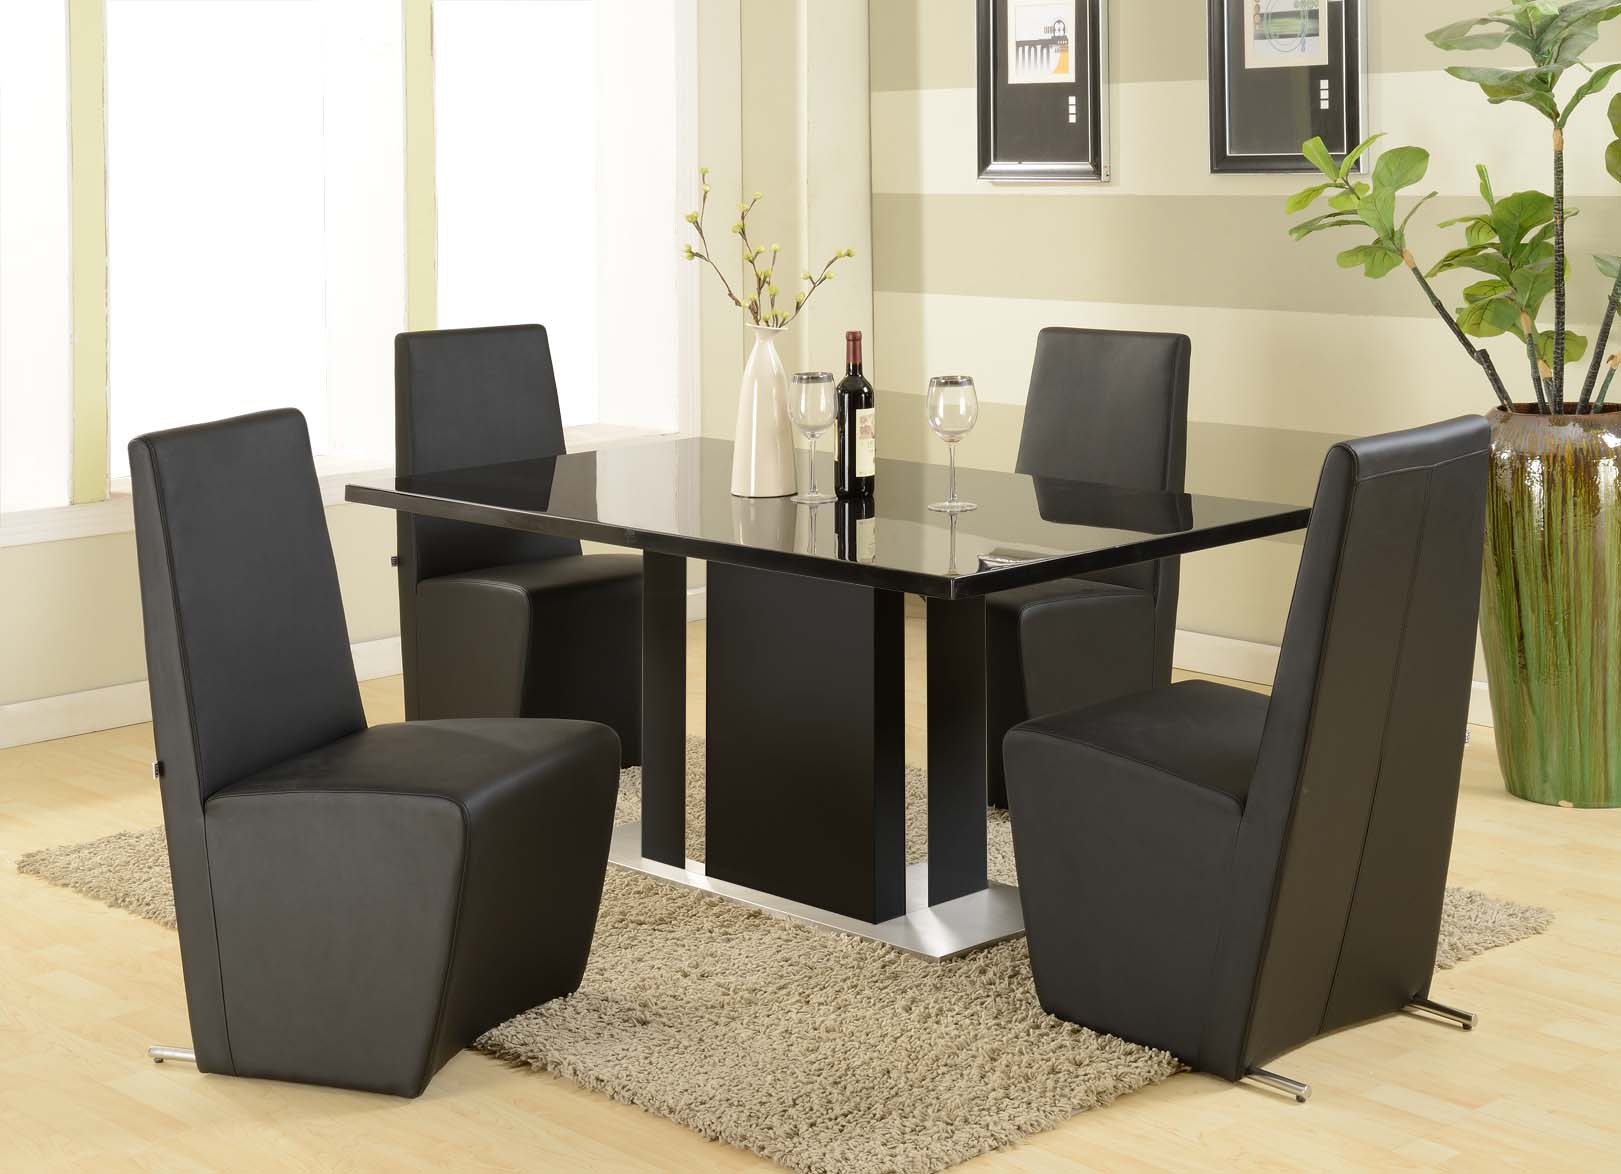 Modern furniture table home design roosa for Table and chair set